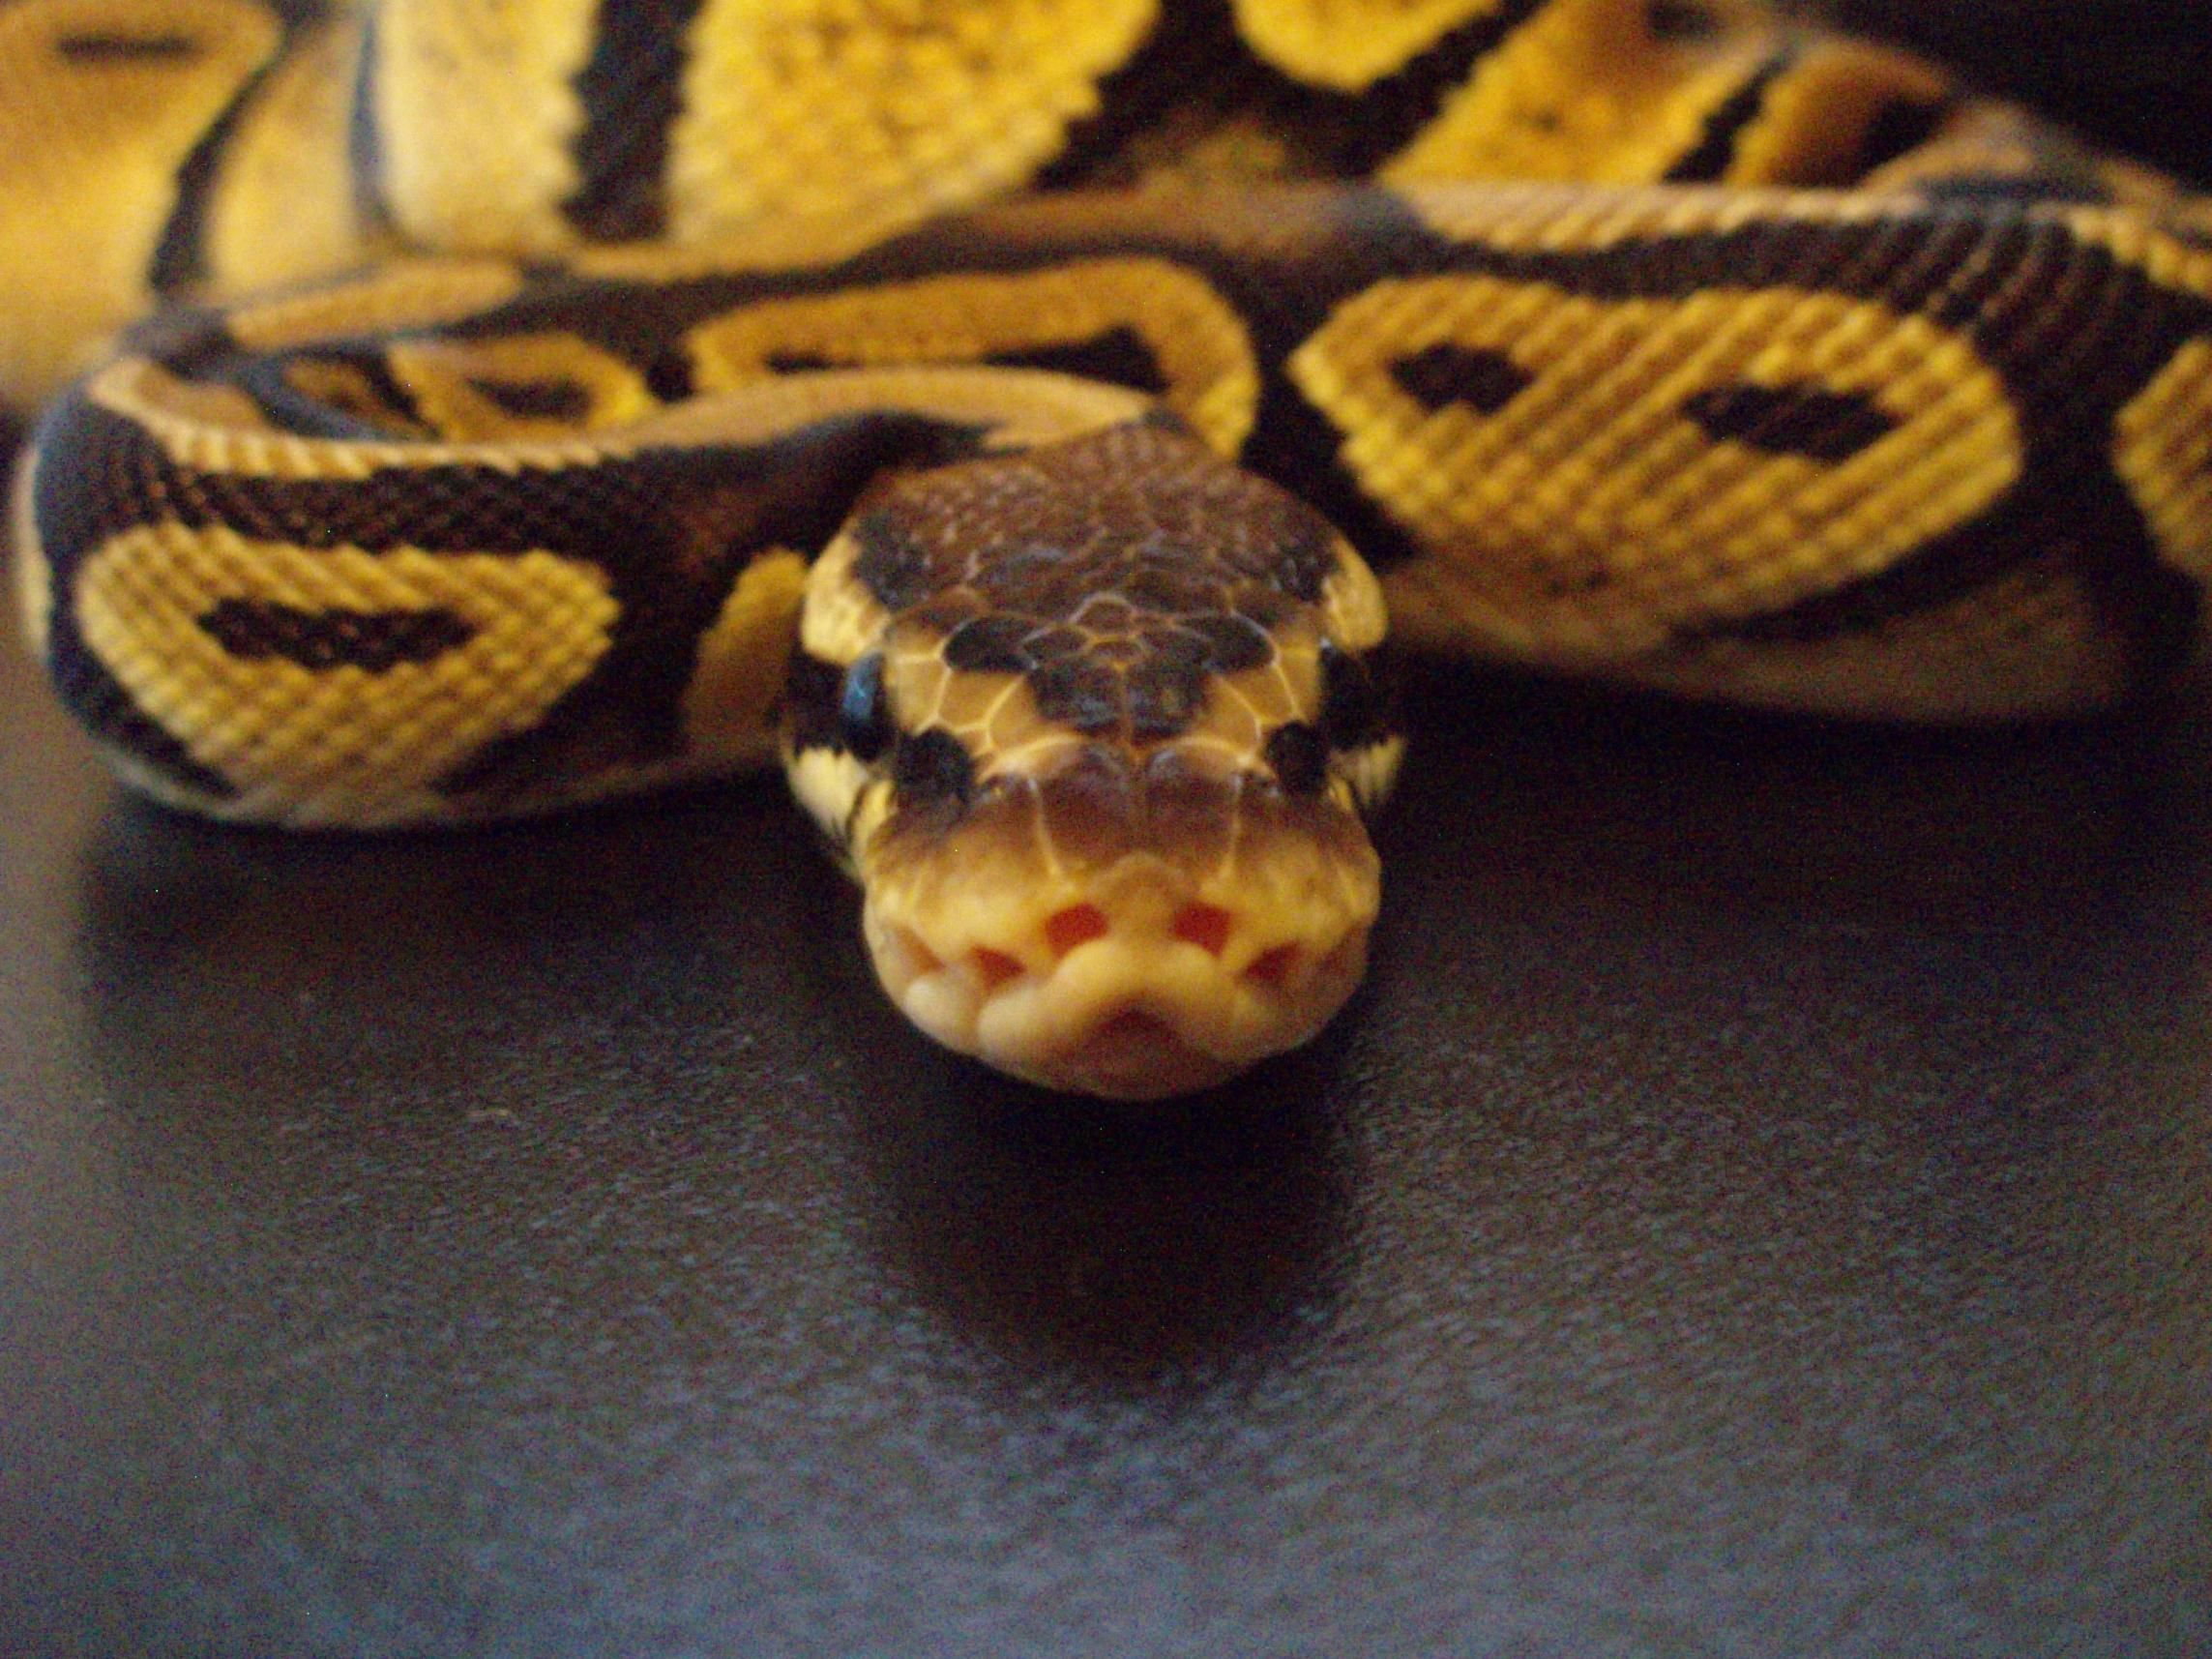 amazing ball python wide hd wallpaper (2287×1715) | snakes